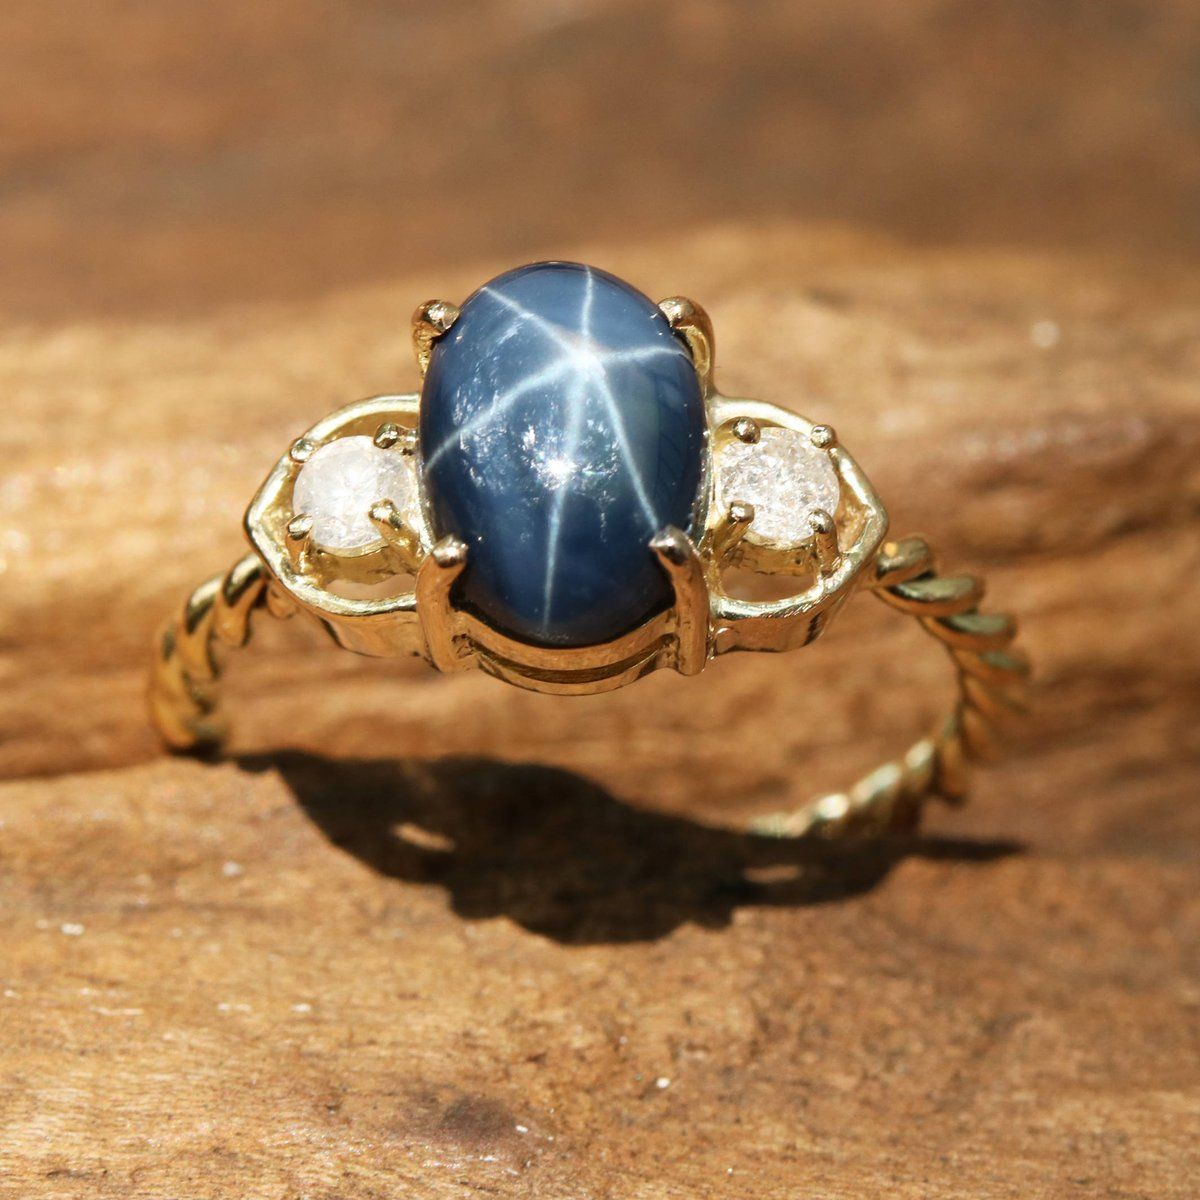 Oval Blue Star Sapphire Ring With Tiny Diamond Side Set In Prongs Setting On 10k Gold Twist Design Band